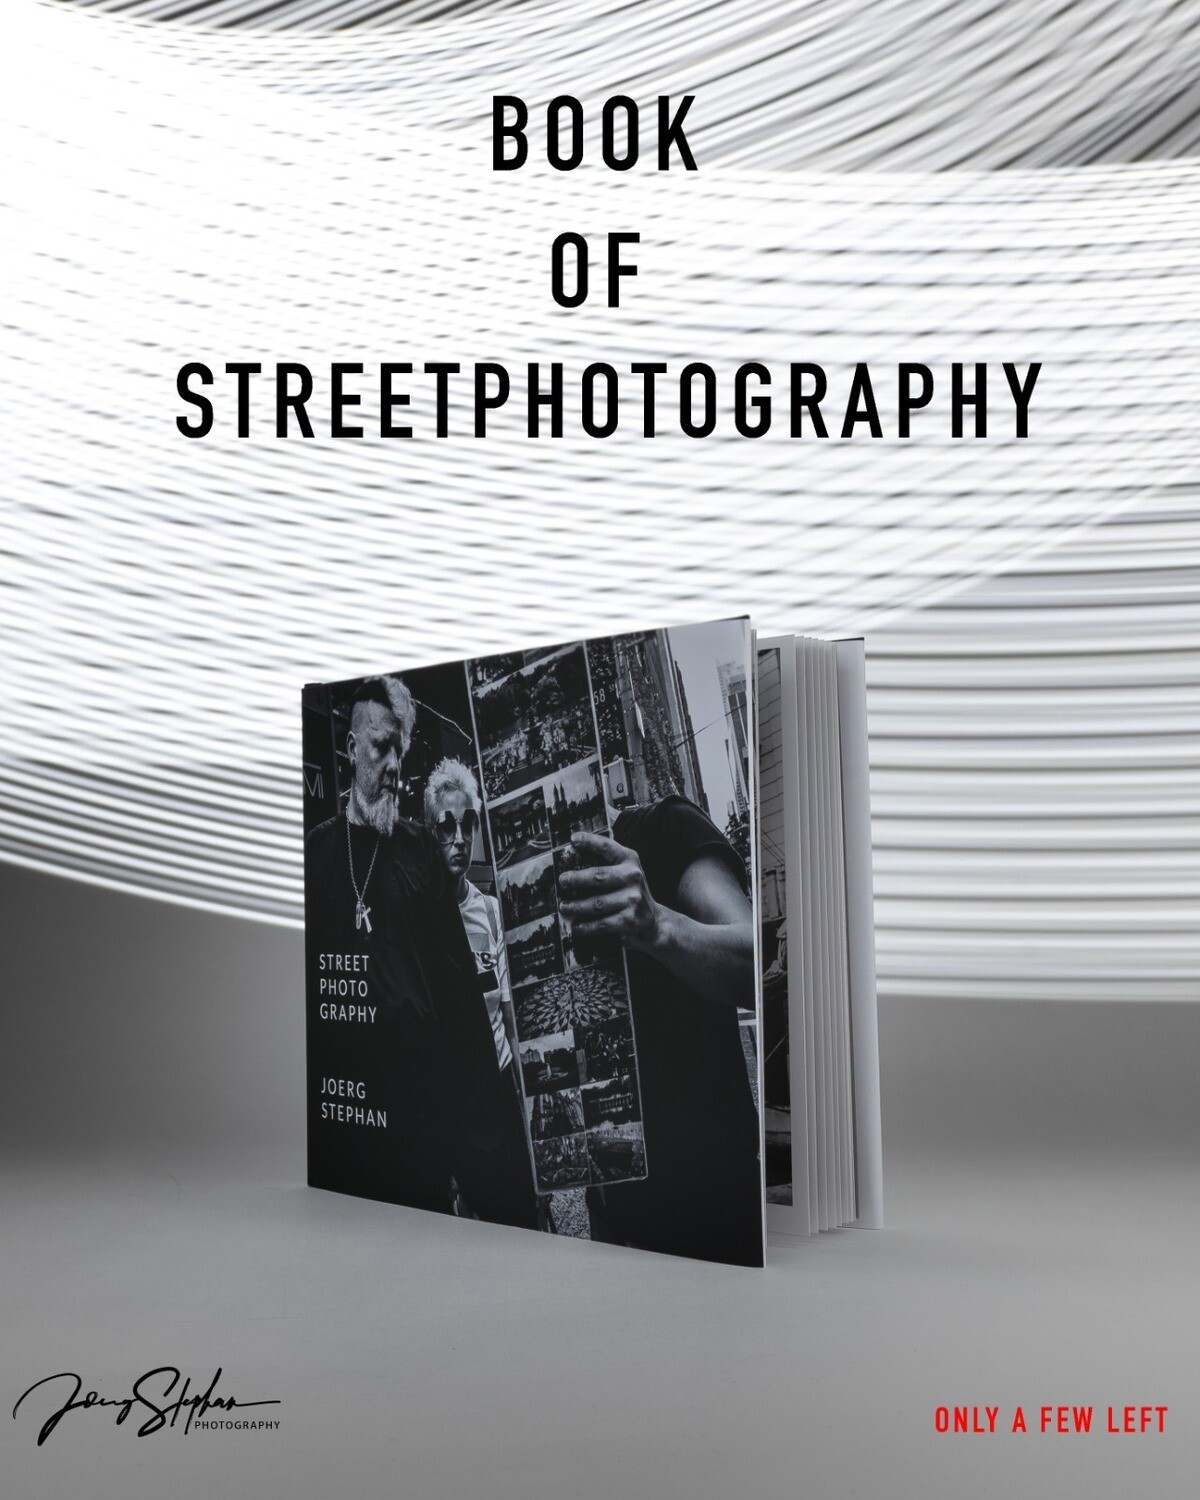 STREET PHOTOGRAPHY book - 26 pages